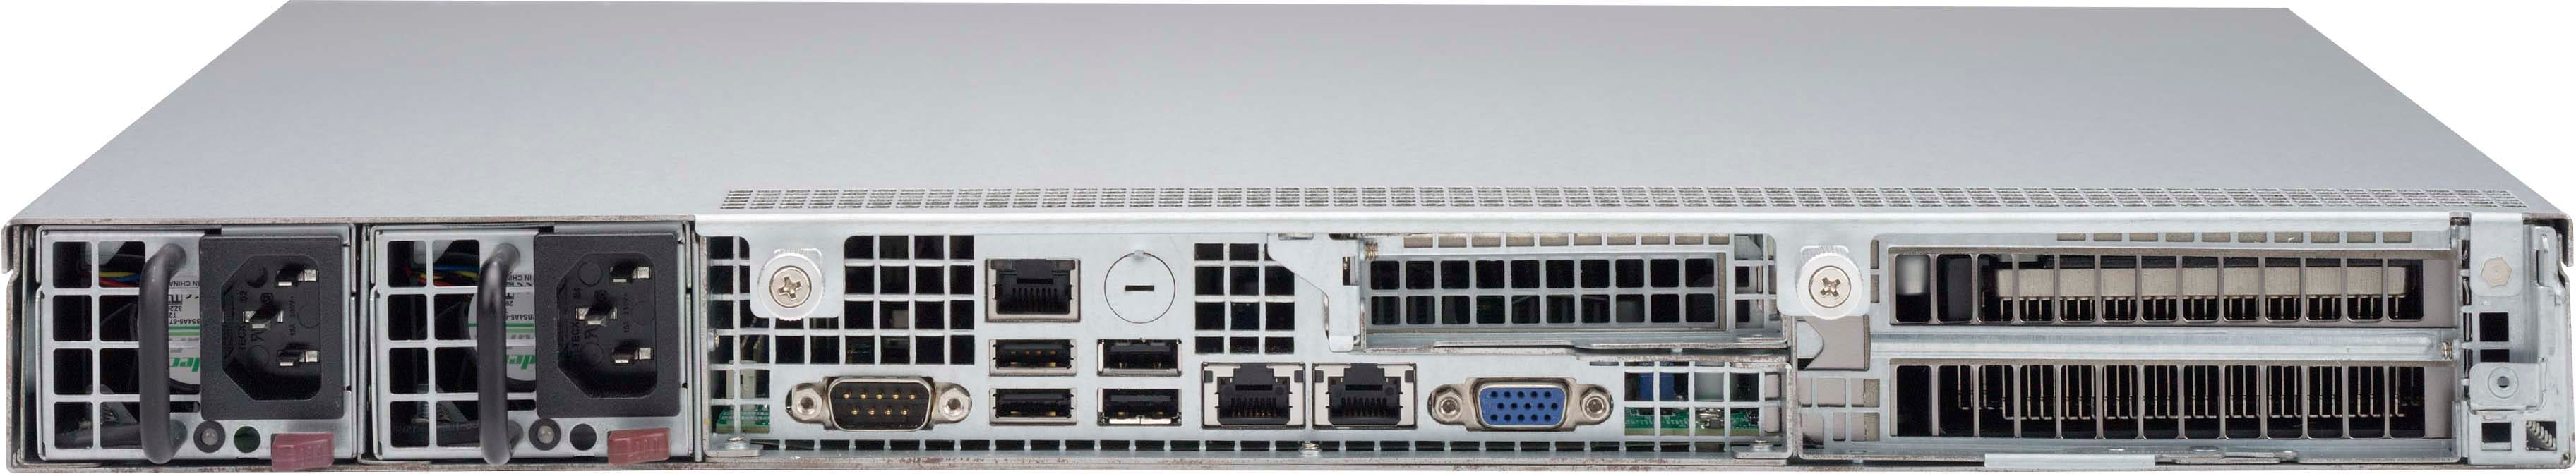 SC514-R400W | 1U | Chassis | Products | Super Micro Computer, Inc